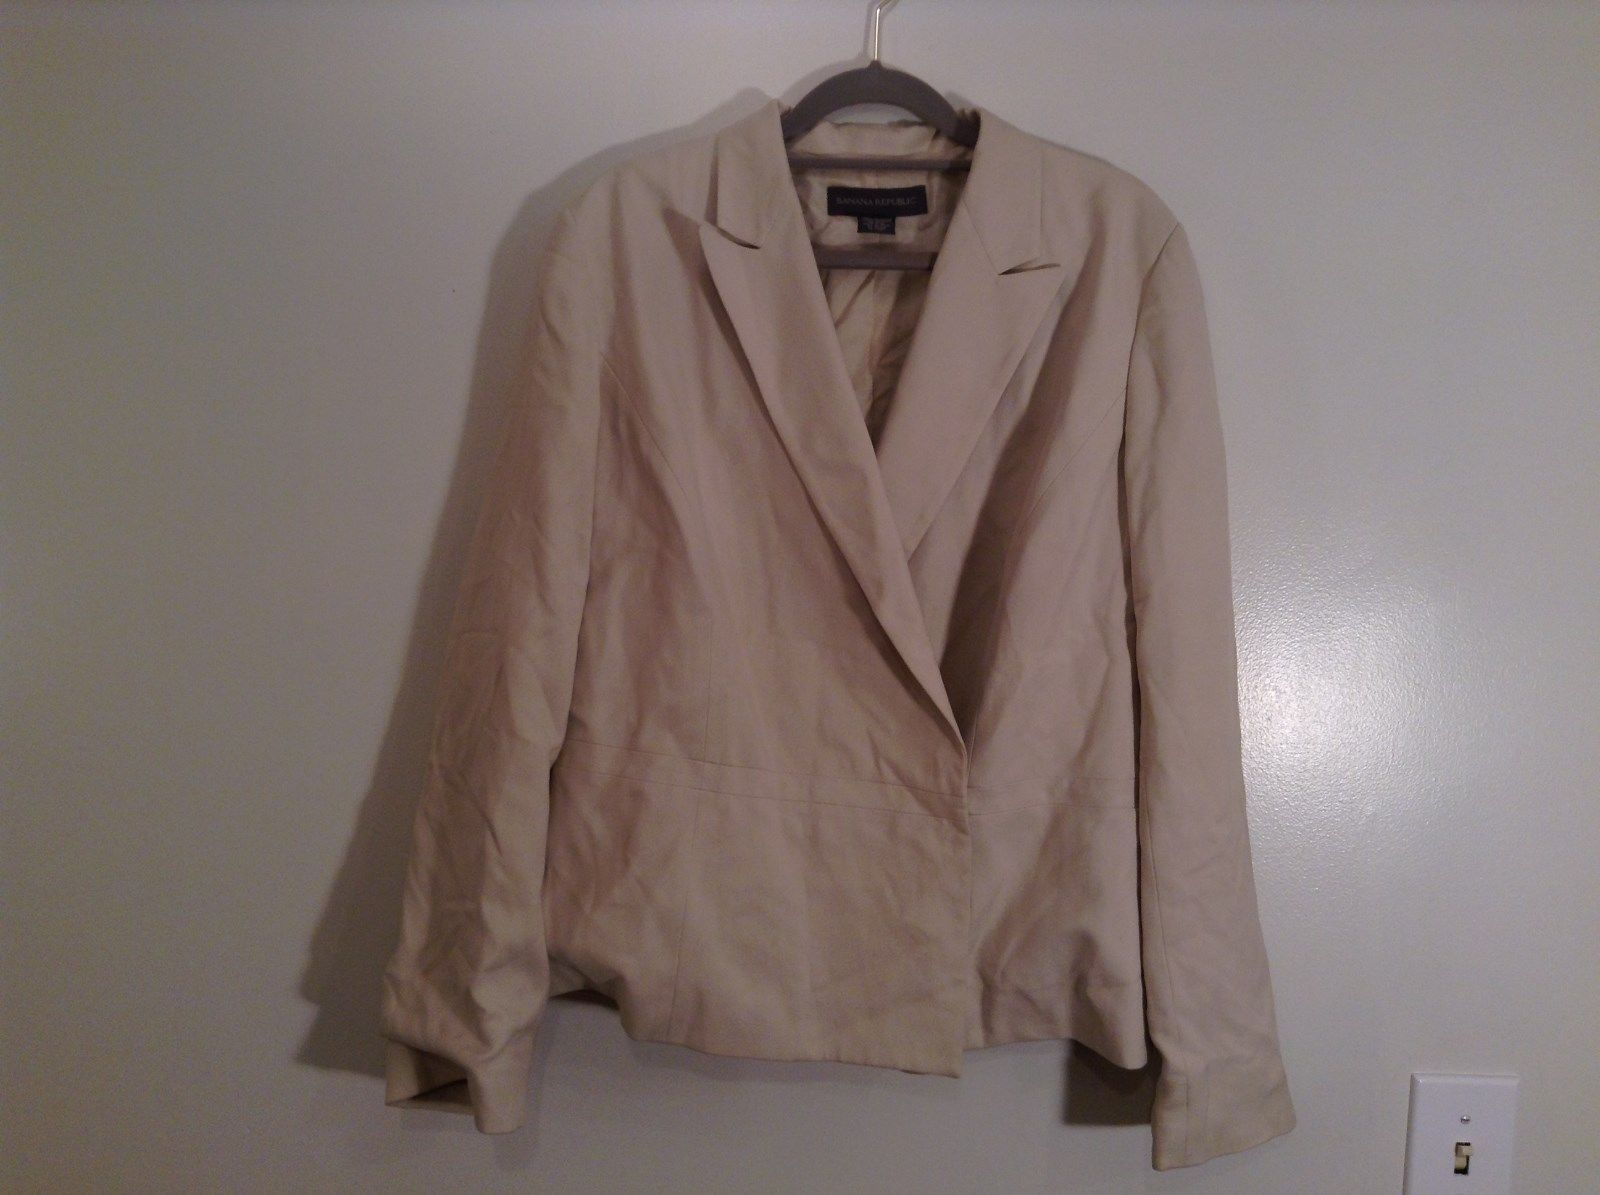 Size 14 Banana Republic Beige Fully Lined 100 Percent Silk Jacket